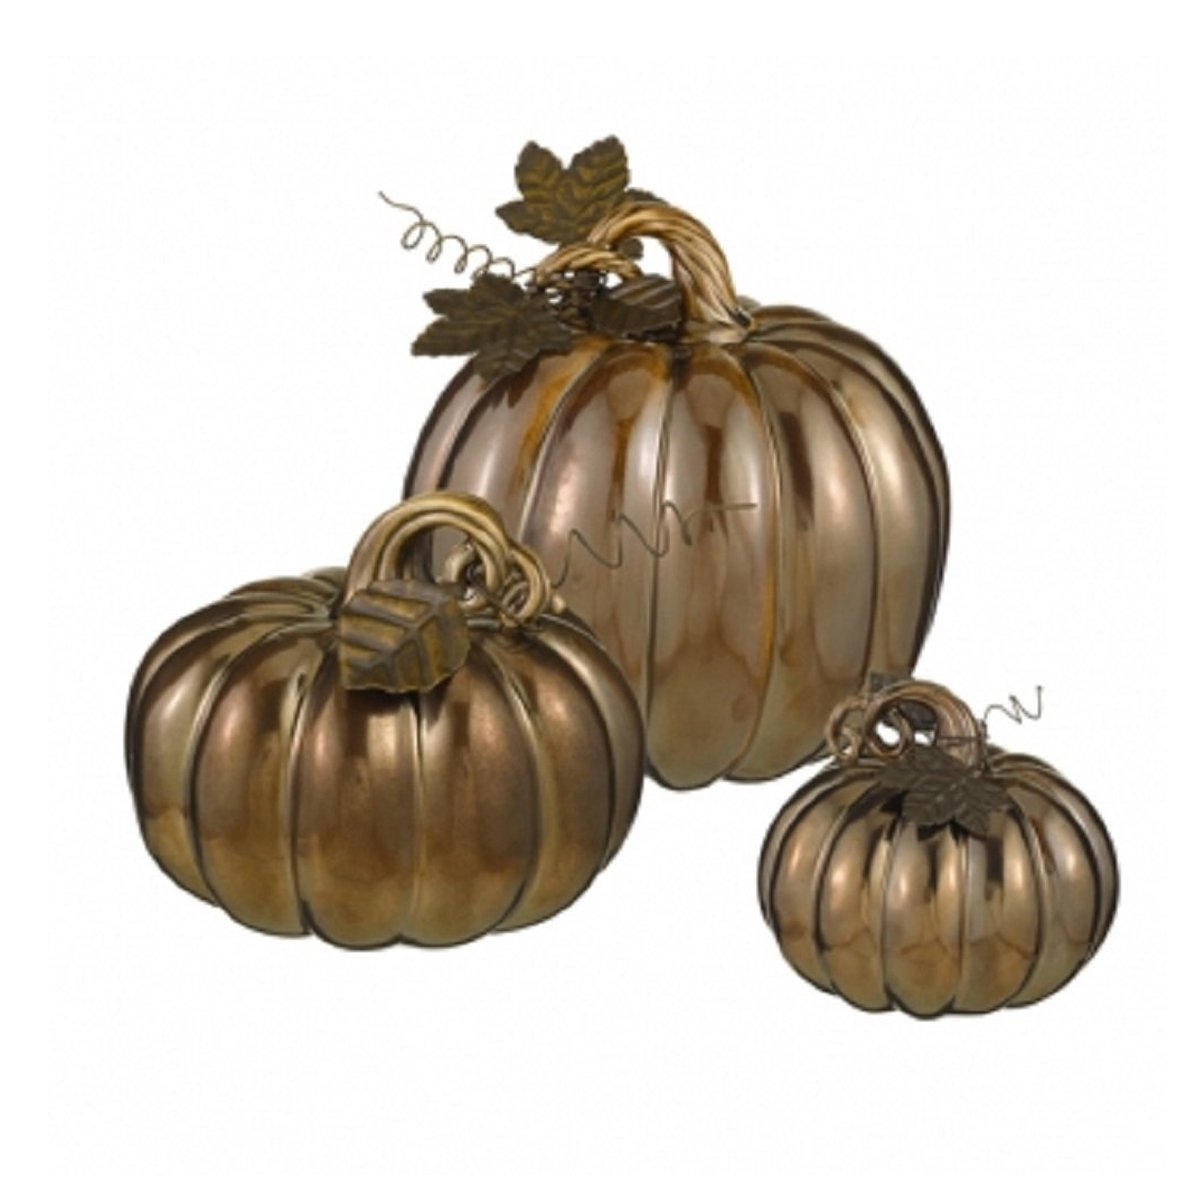 Bronze Pumpkins Set of 3 - Ceramic / Metal